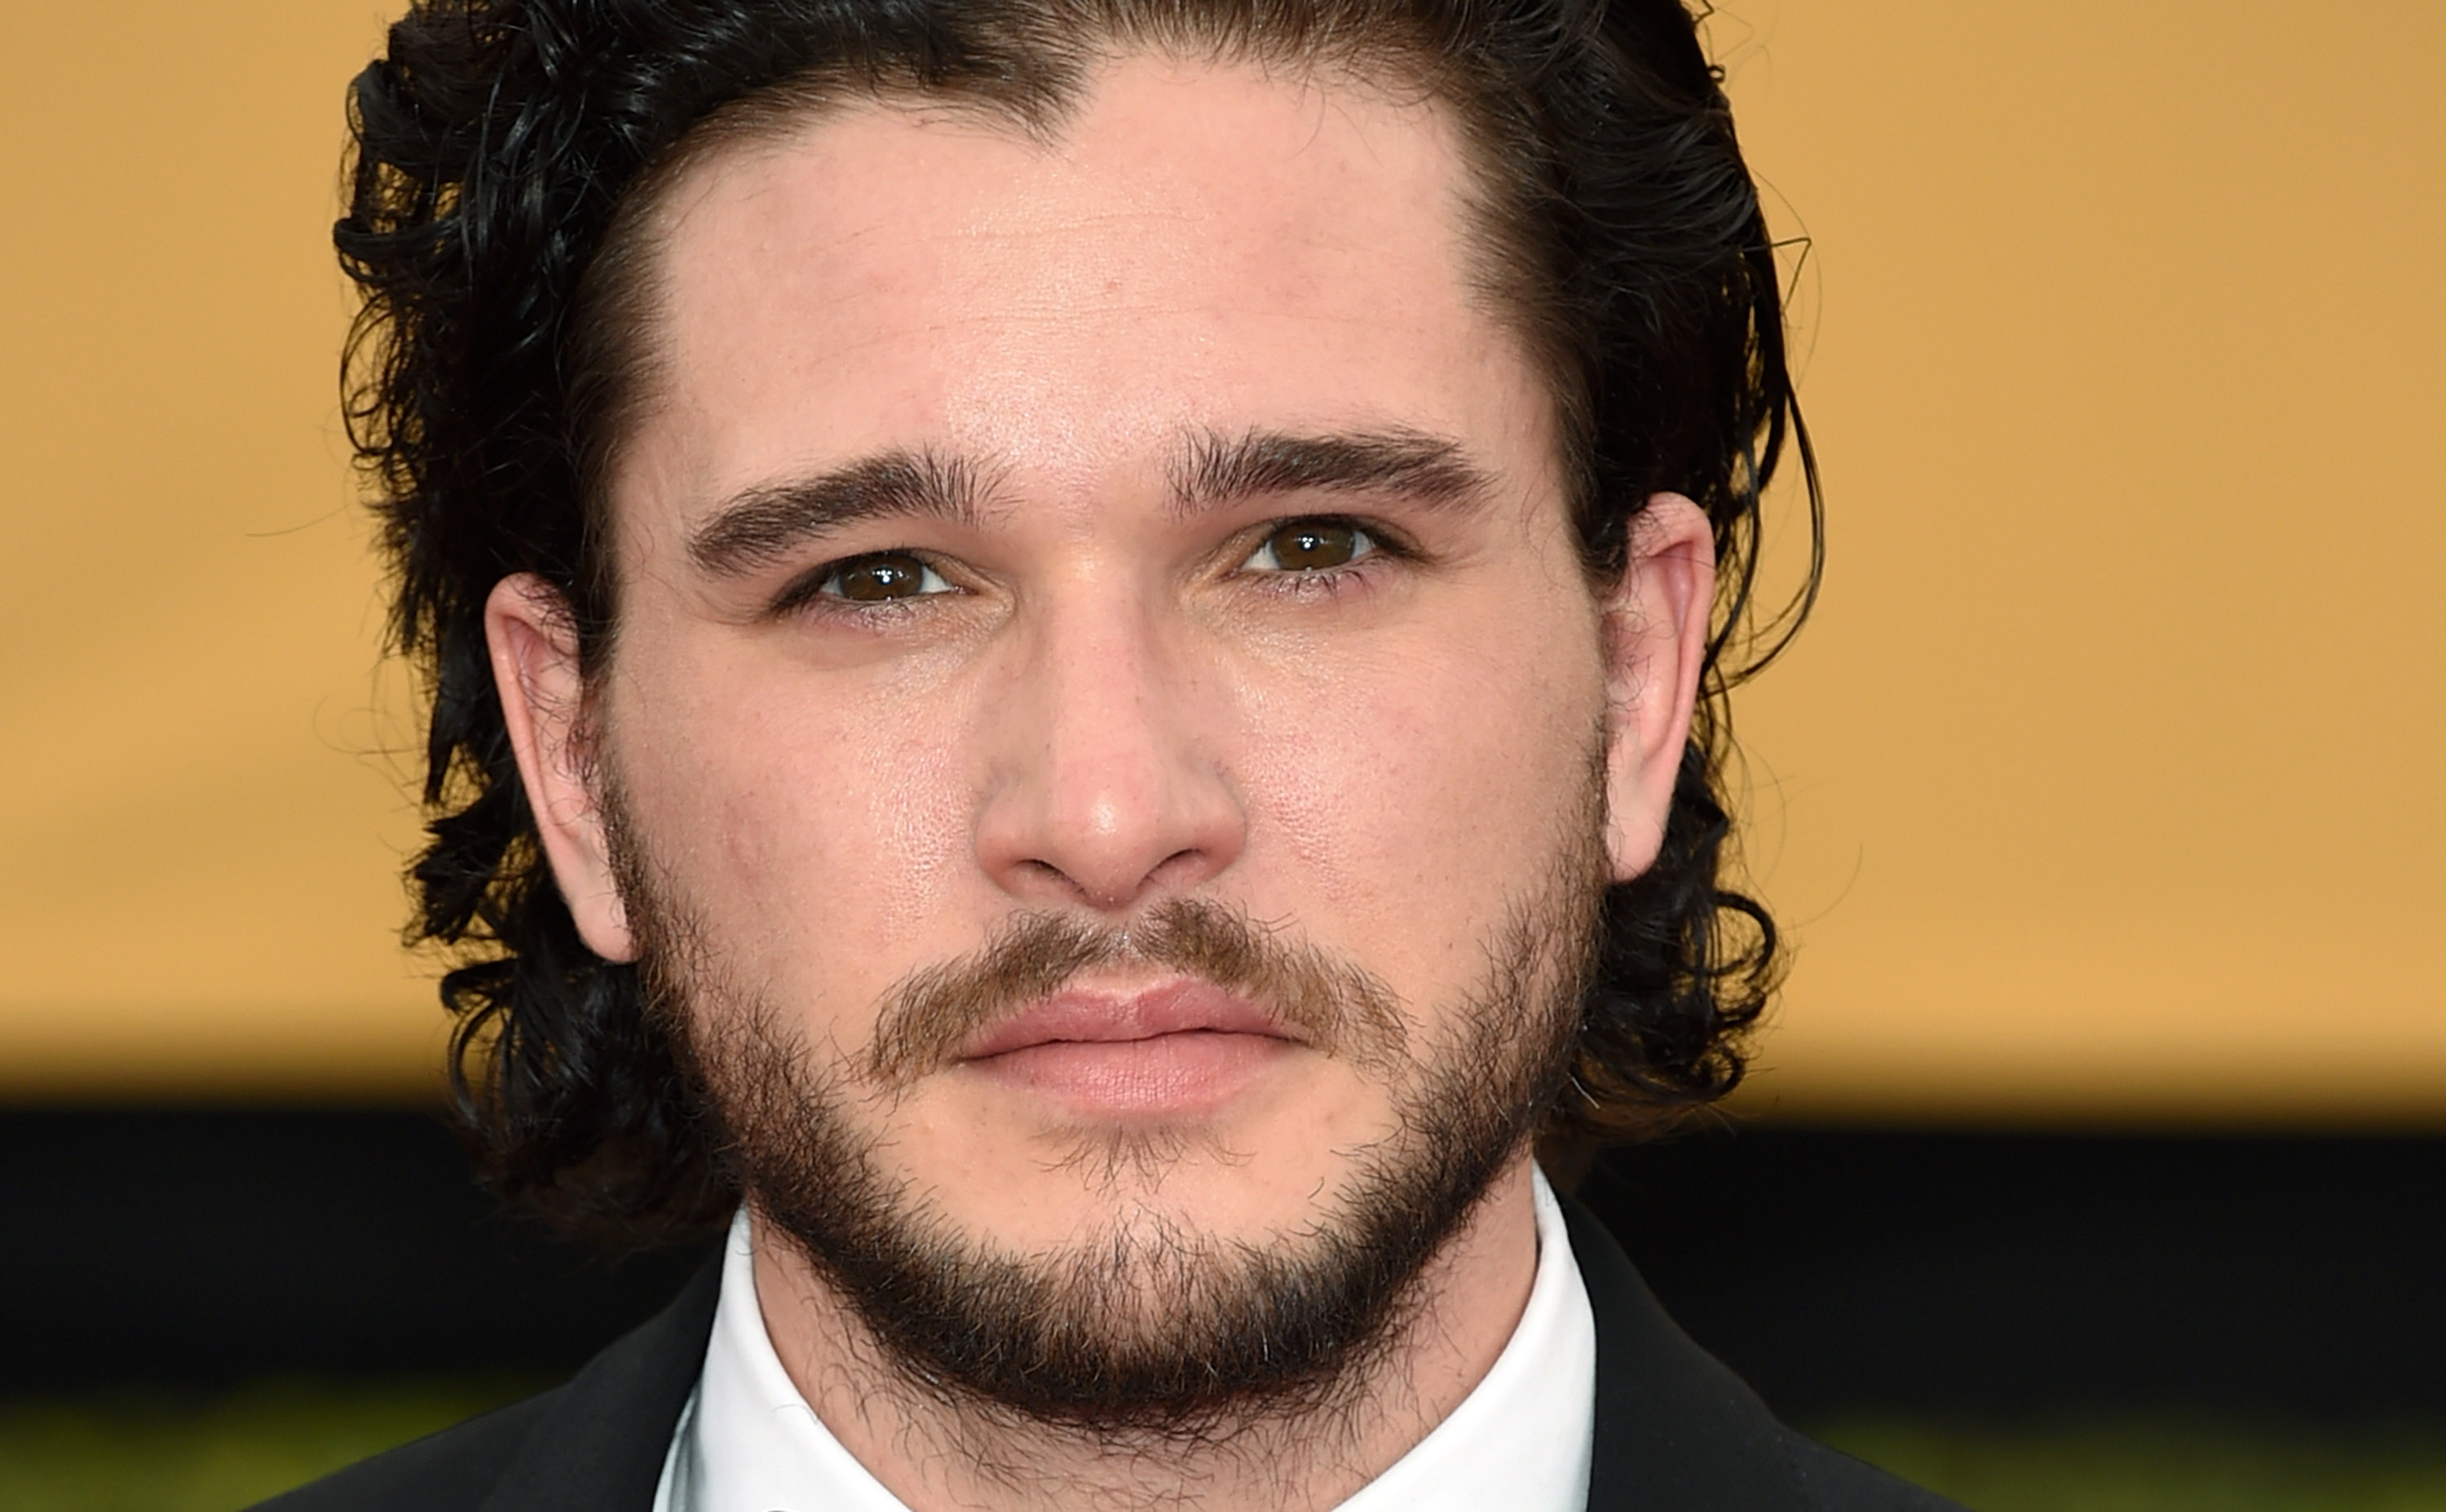 Kit Harrington wearing a tux at the Emmys is something you deserve to look at for a few minutes